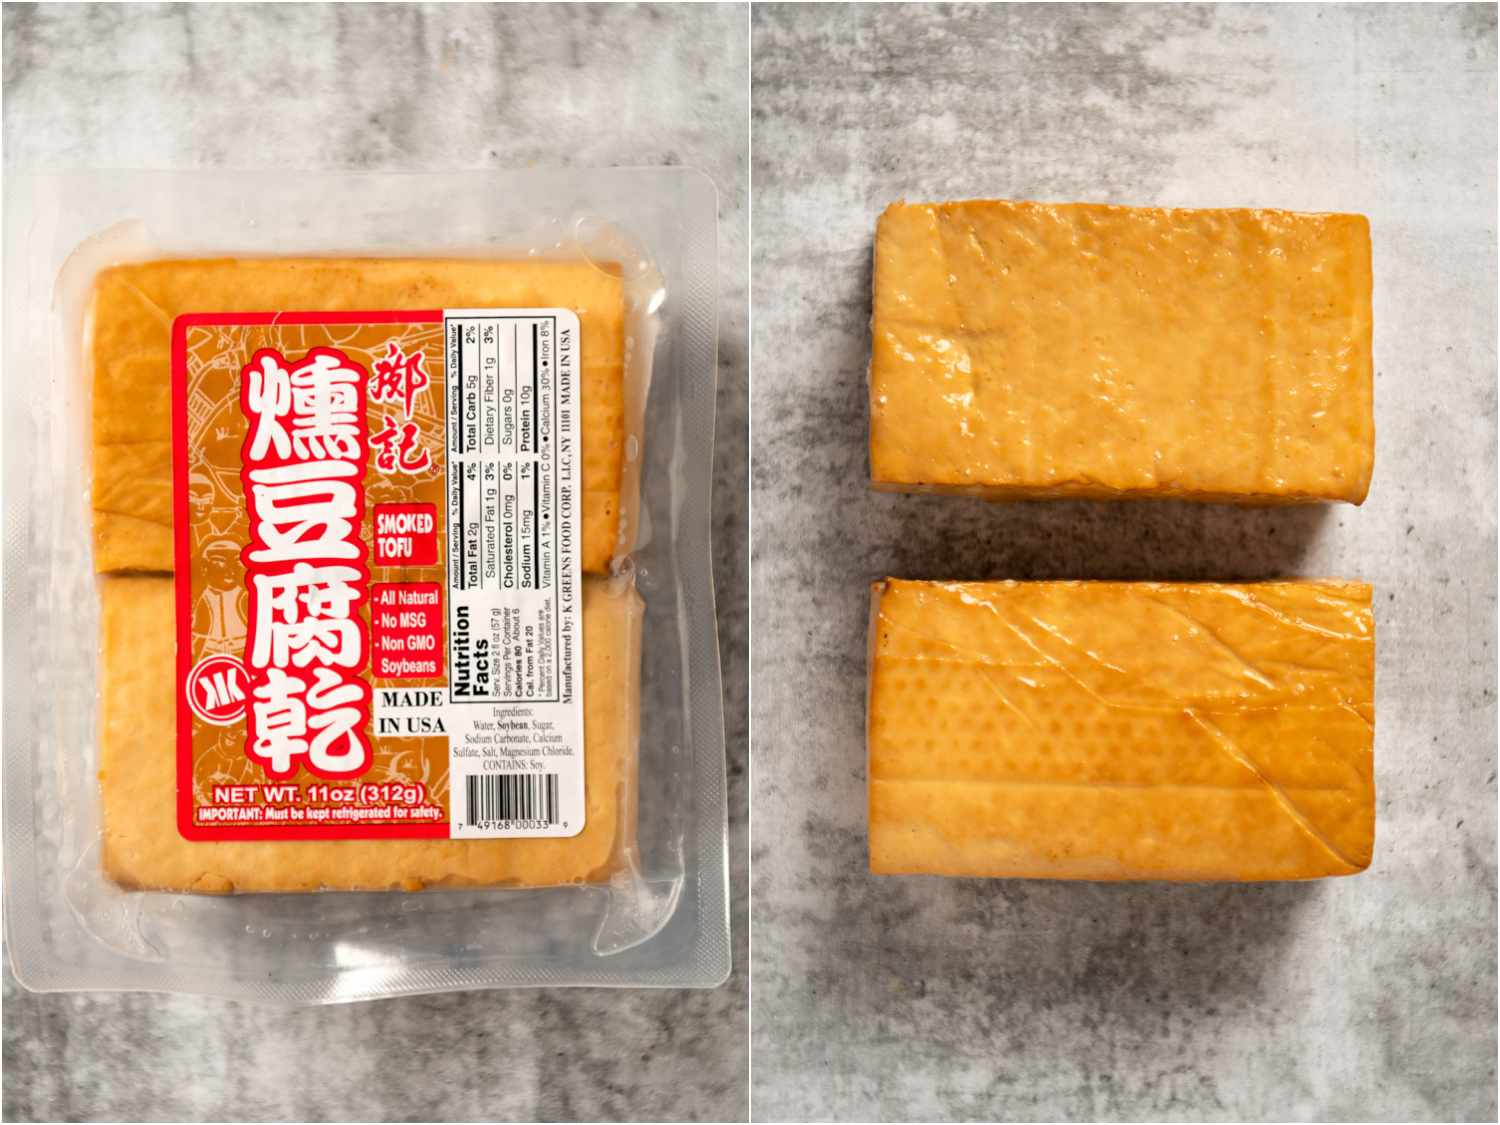 collage: smoked tofu in packaging; unpackaged